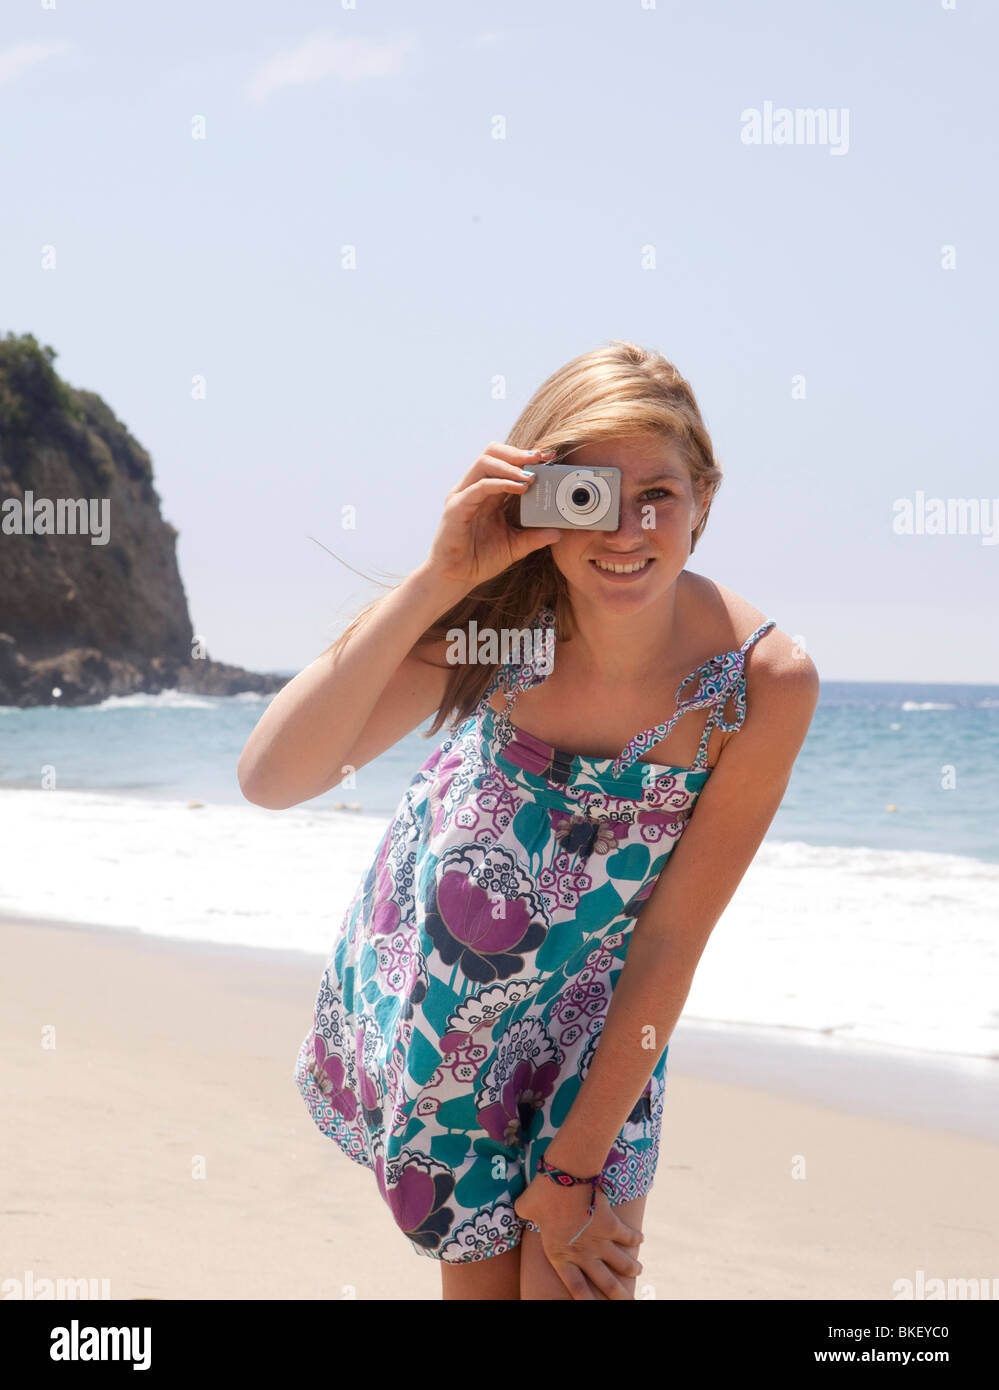 Teenage girl taking picture at beach - Stock Image